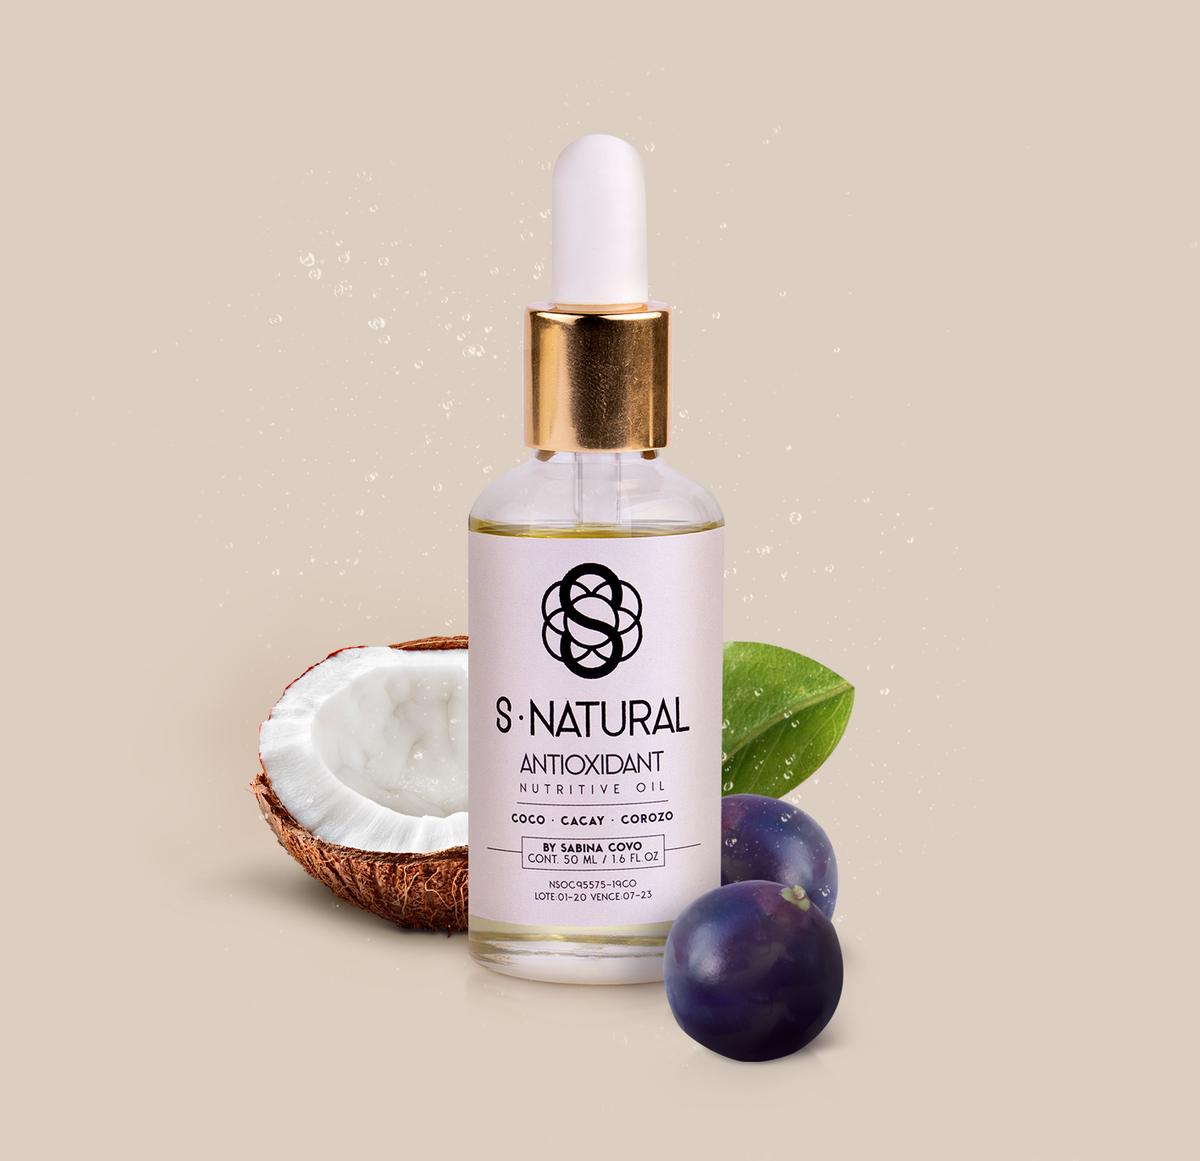 S Natural Oil, Antioxidant nutritive oil, Corozo, Cacay, Coconut, Exotic Ingredients, Colombia, Amazon rainforest, Natural Beauty, Clean Beauty, Organic Skin Care, Natural beauty, Antioxidants, Serum, Exotic ingredients, Colombian product, Sabina Covo.